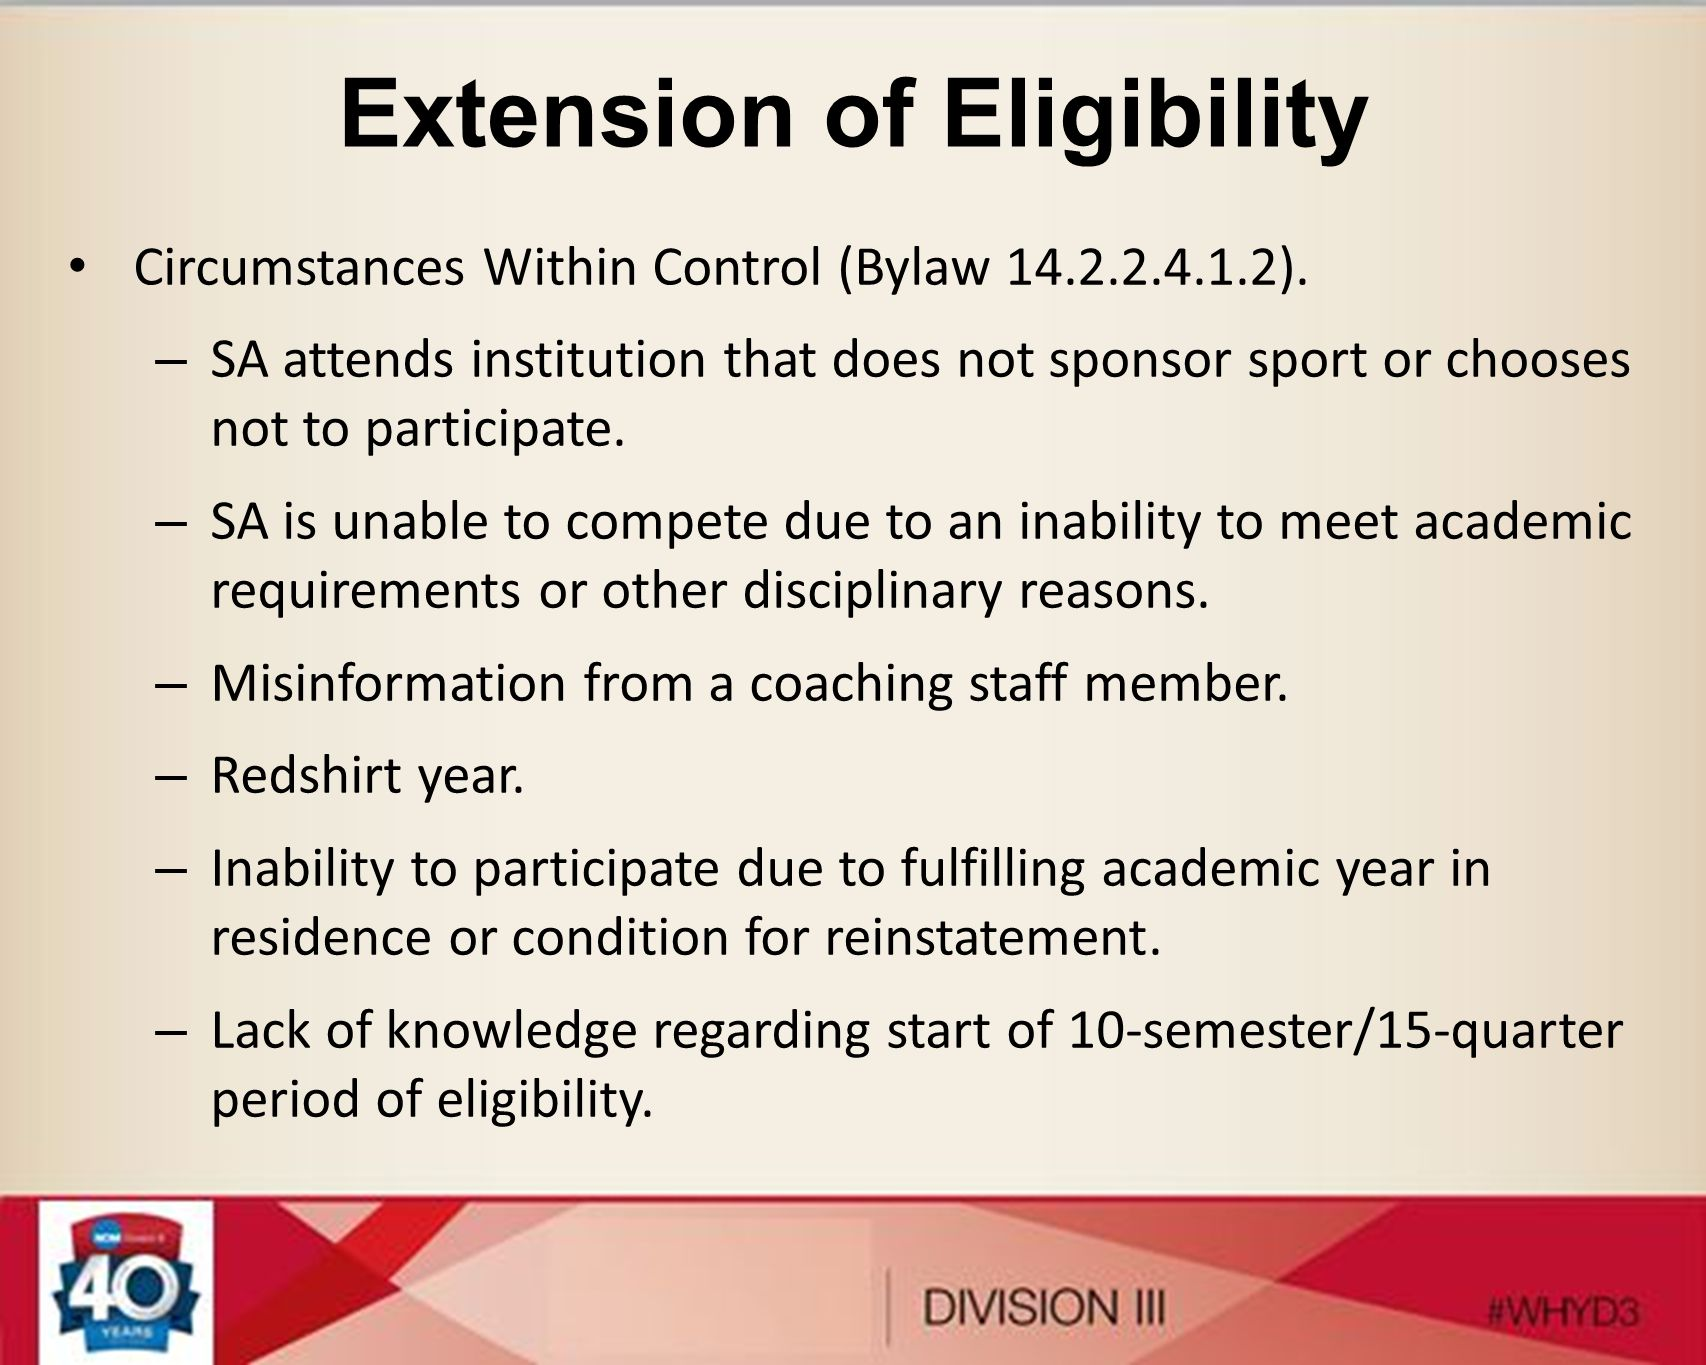 Extension of Eligibility Circumstances Within Control (Bylaw 14.2.2.4.1.2).